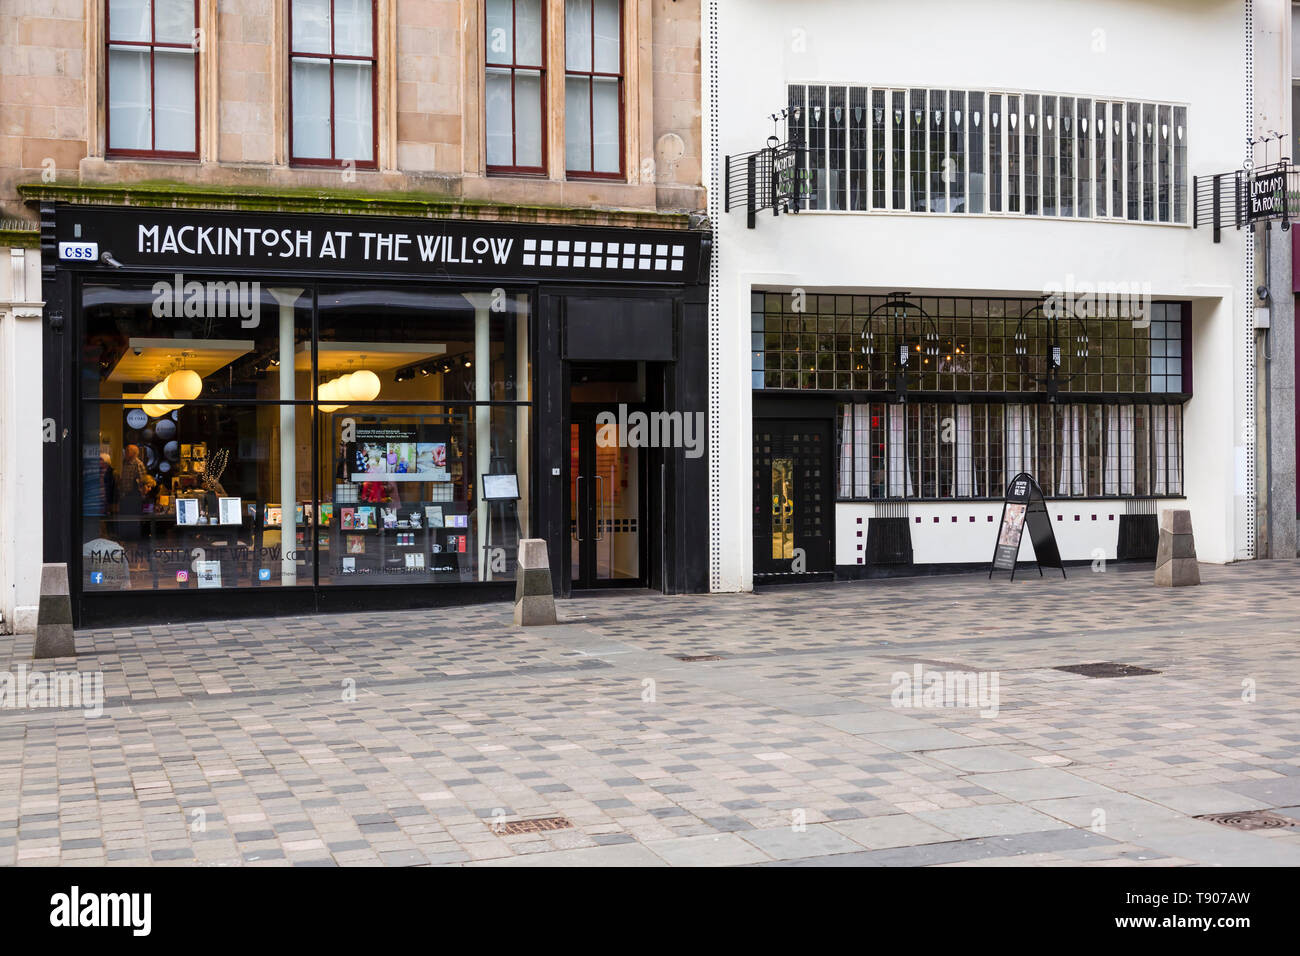 The front façade of Mackintosh at the Willow Tea Rooms and Visitor centre on Sauchiehall Street in Glasgow city centre, Scotland, UK Stock Photo